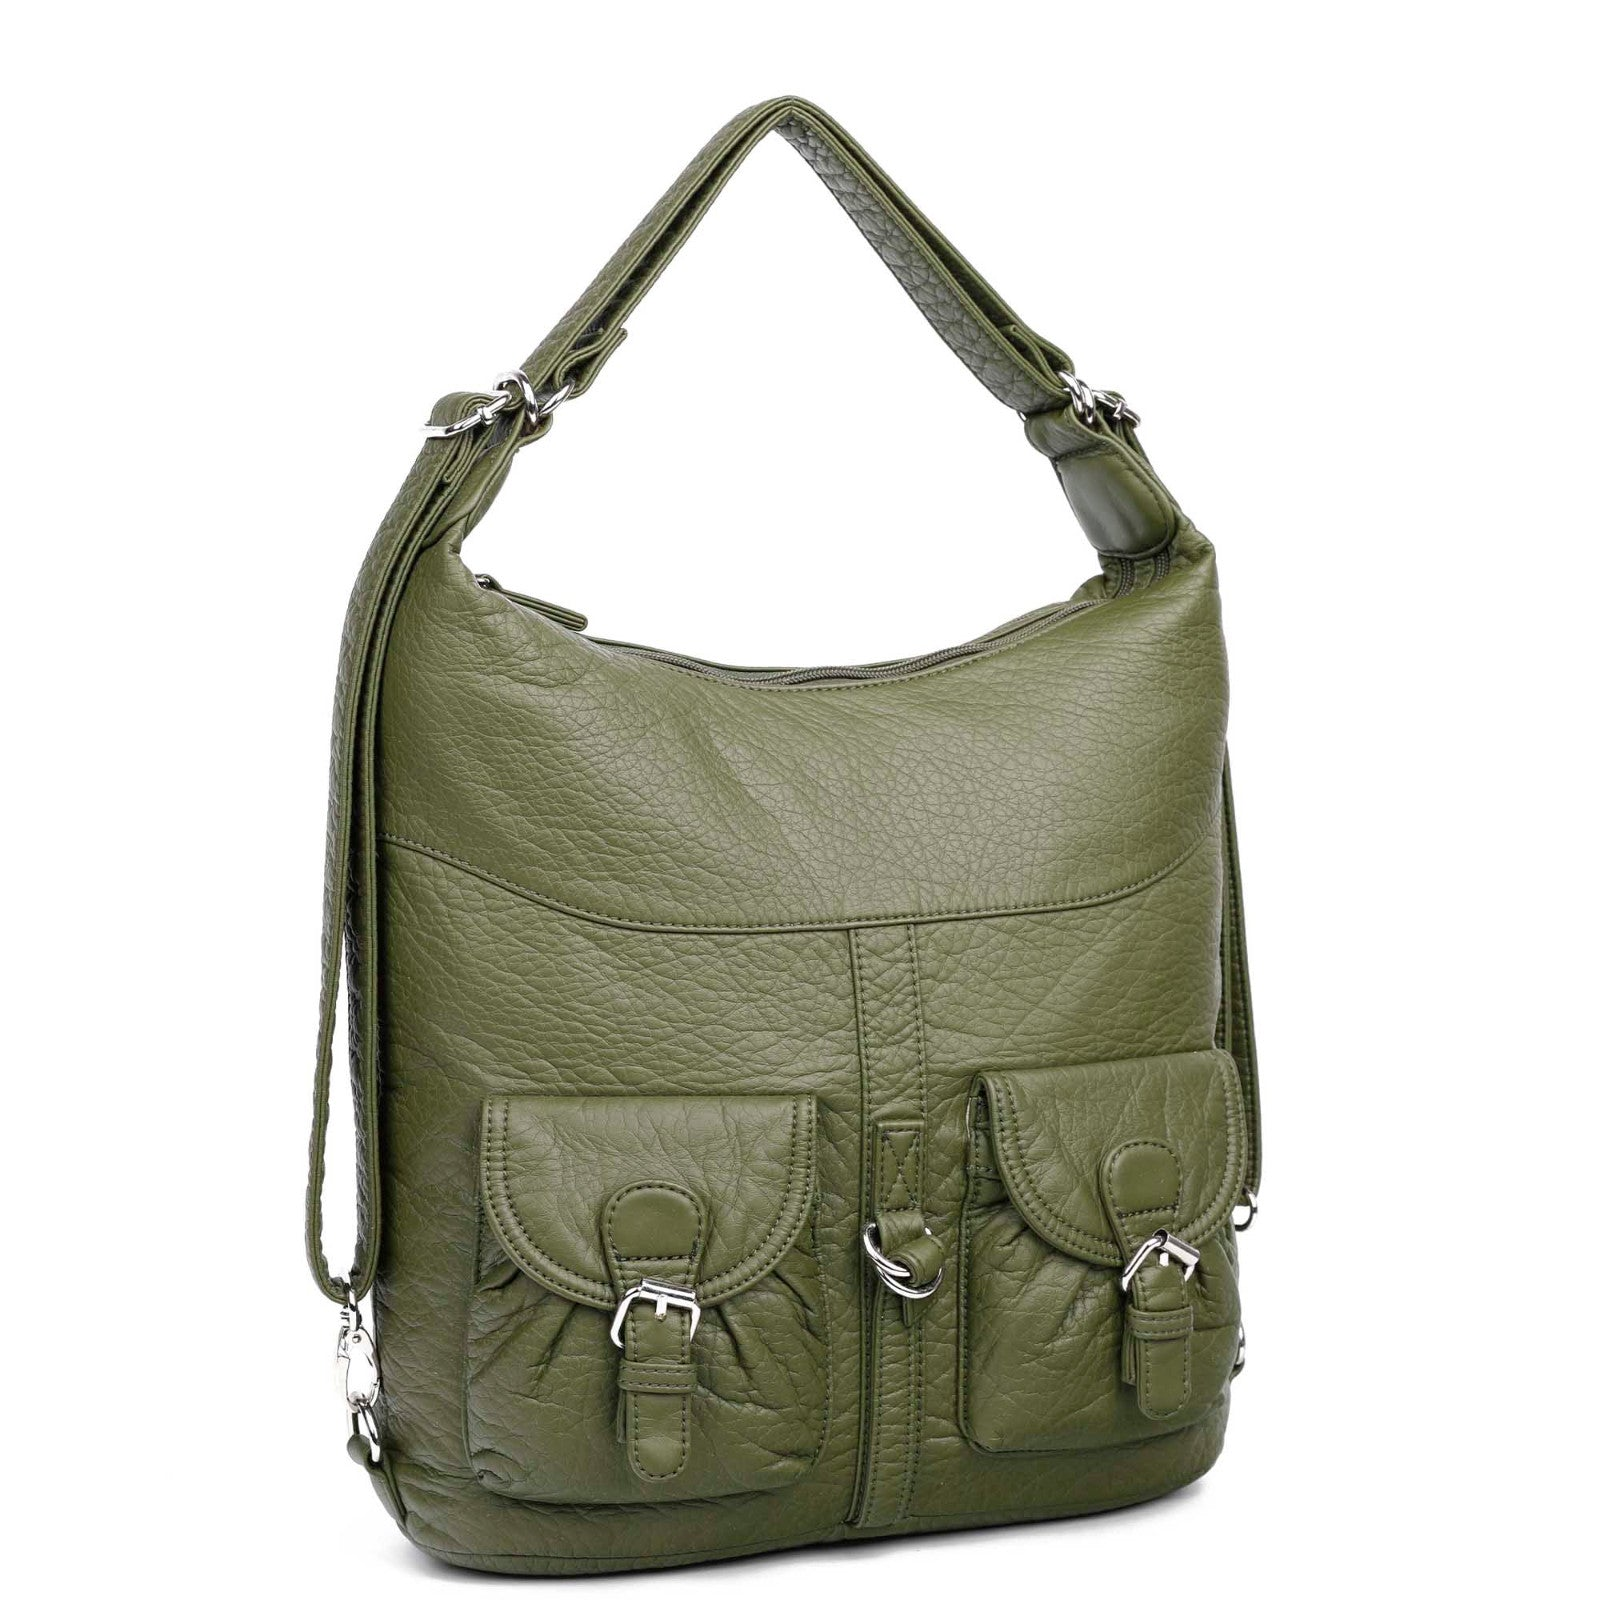 Convertible crossbody bag / Women Bags / Jane Convertible / Army Green - Nohprec Experience